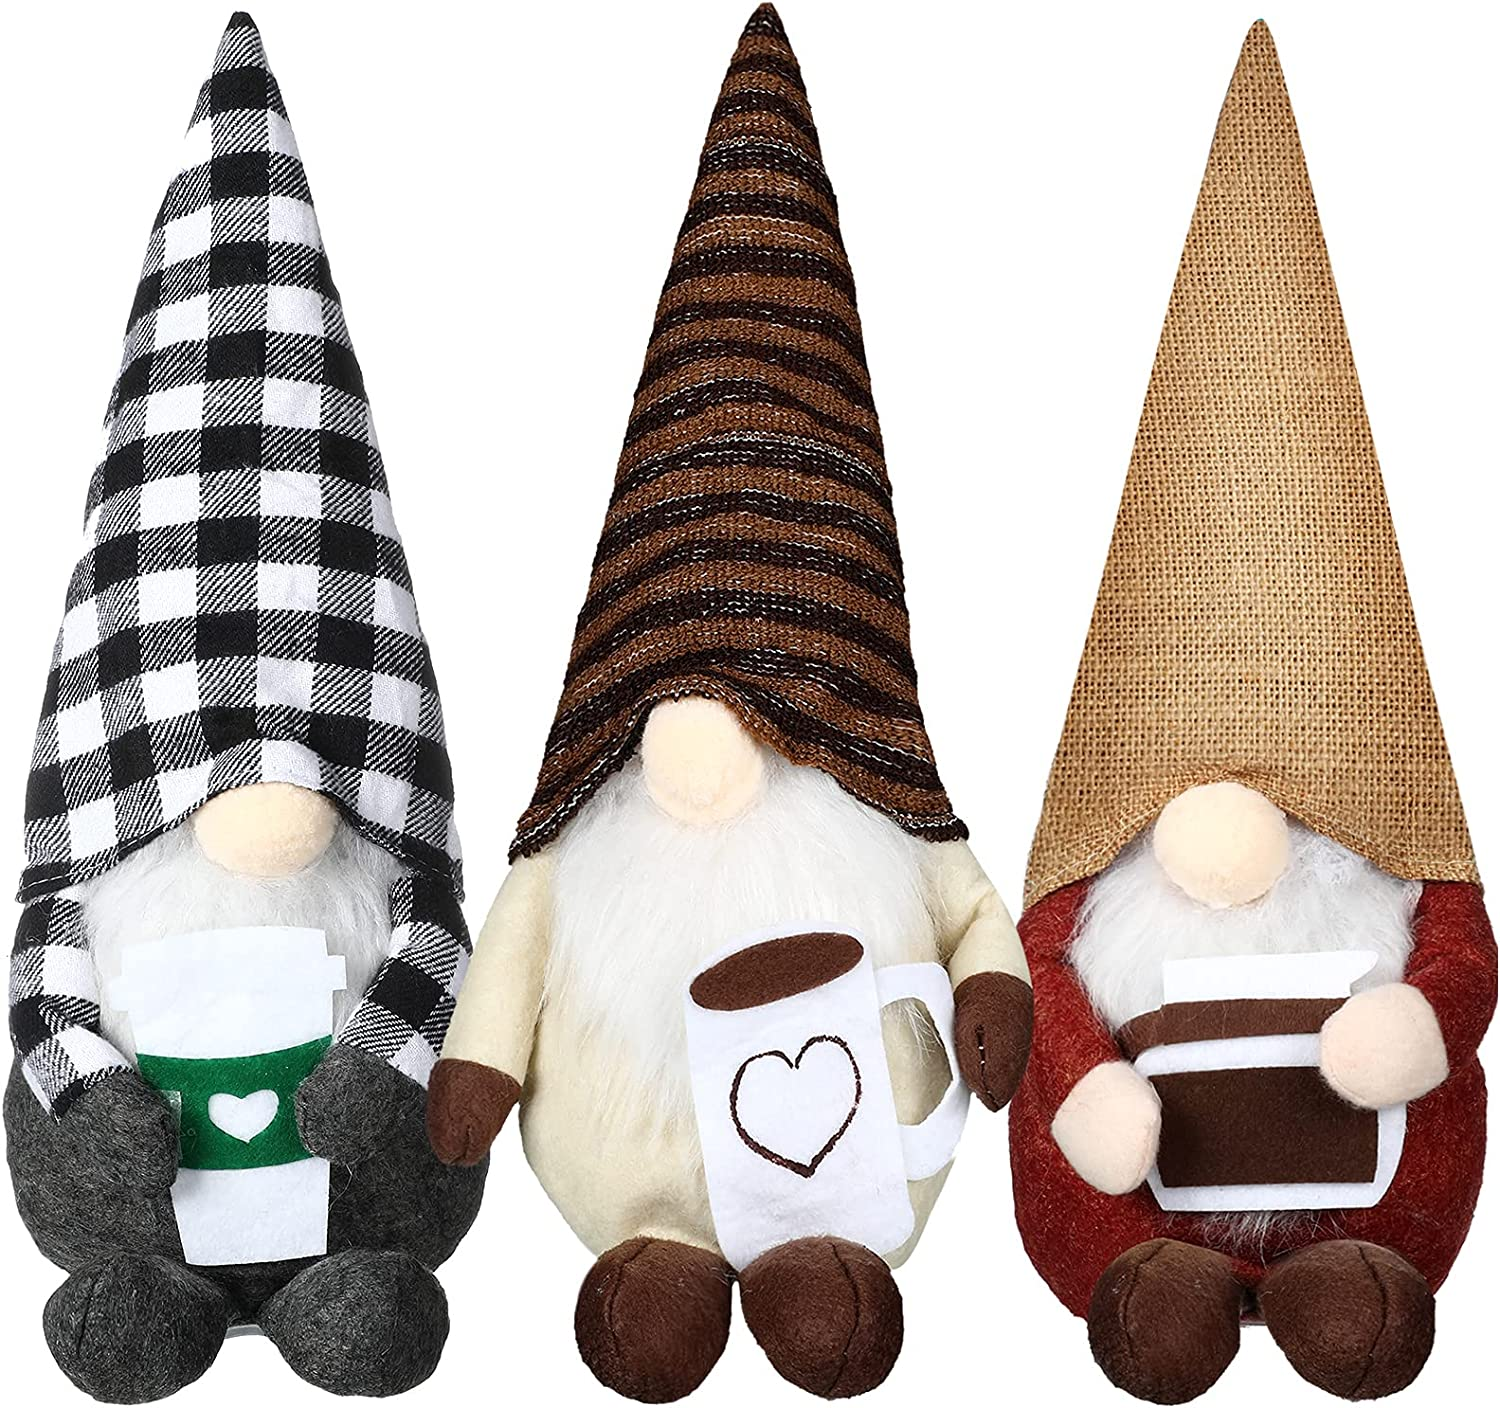 3 Pieces Coffee Gnome Bar Decor Award-winning store Plaid Some reservation Swedish Tomte